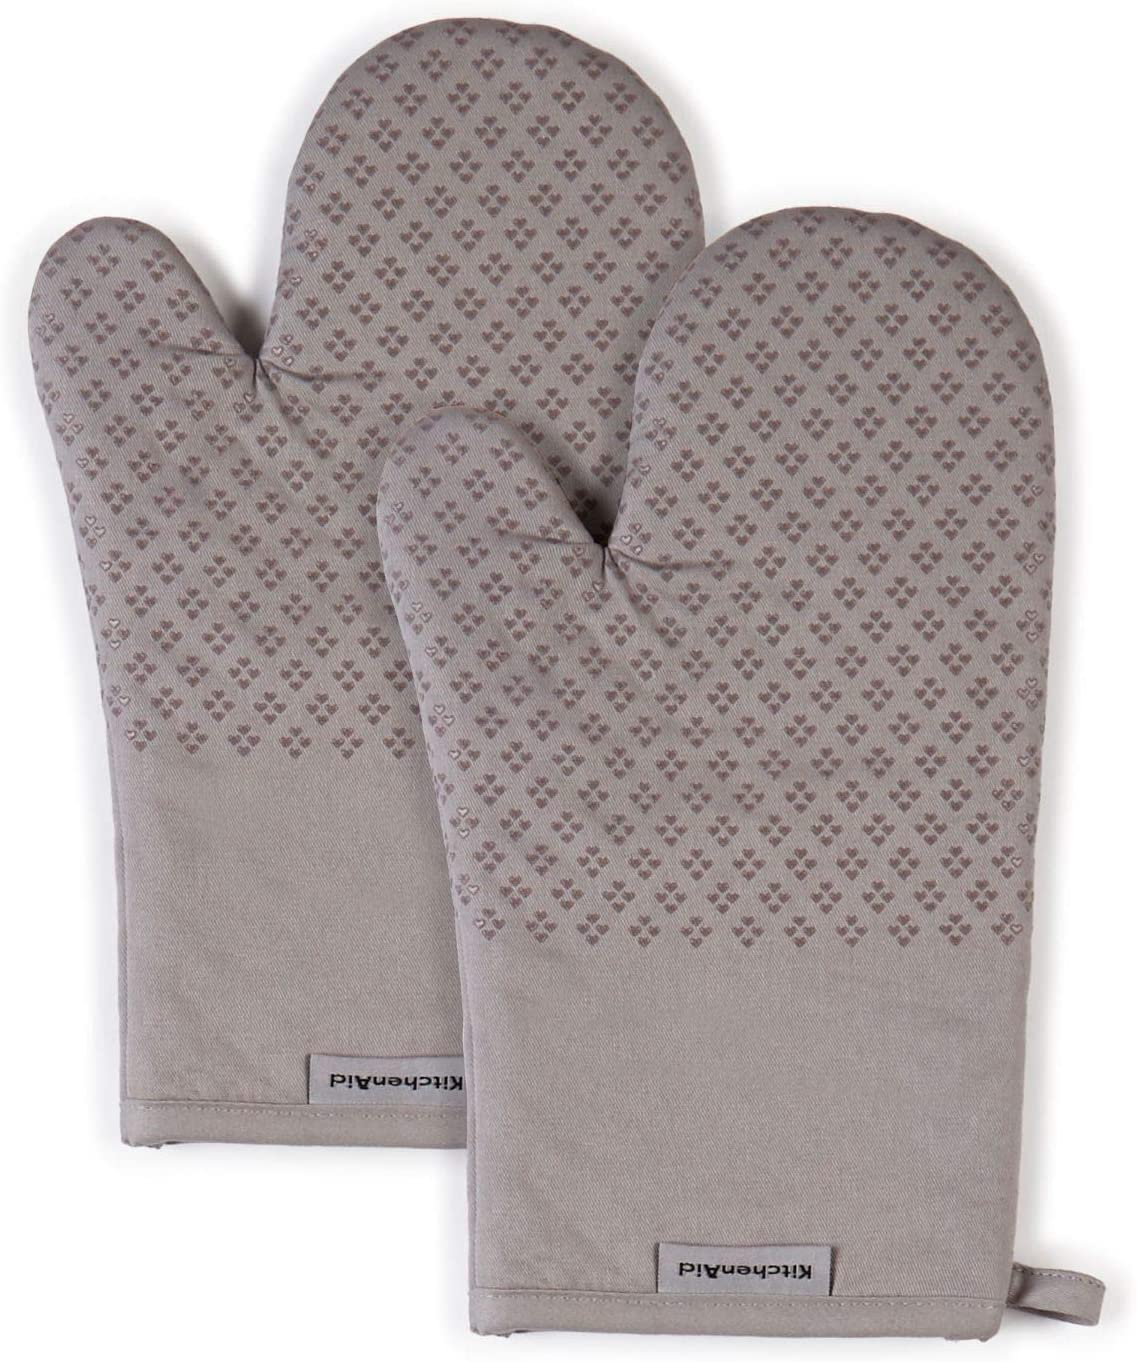 Set of 2 KitchenAid Asteroid Cotton Oven Mitts with Silicone Grip Gray 2 Count